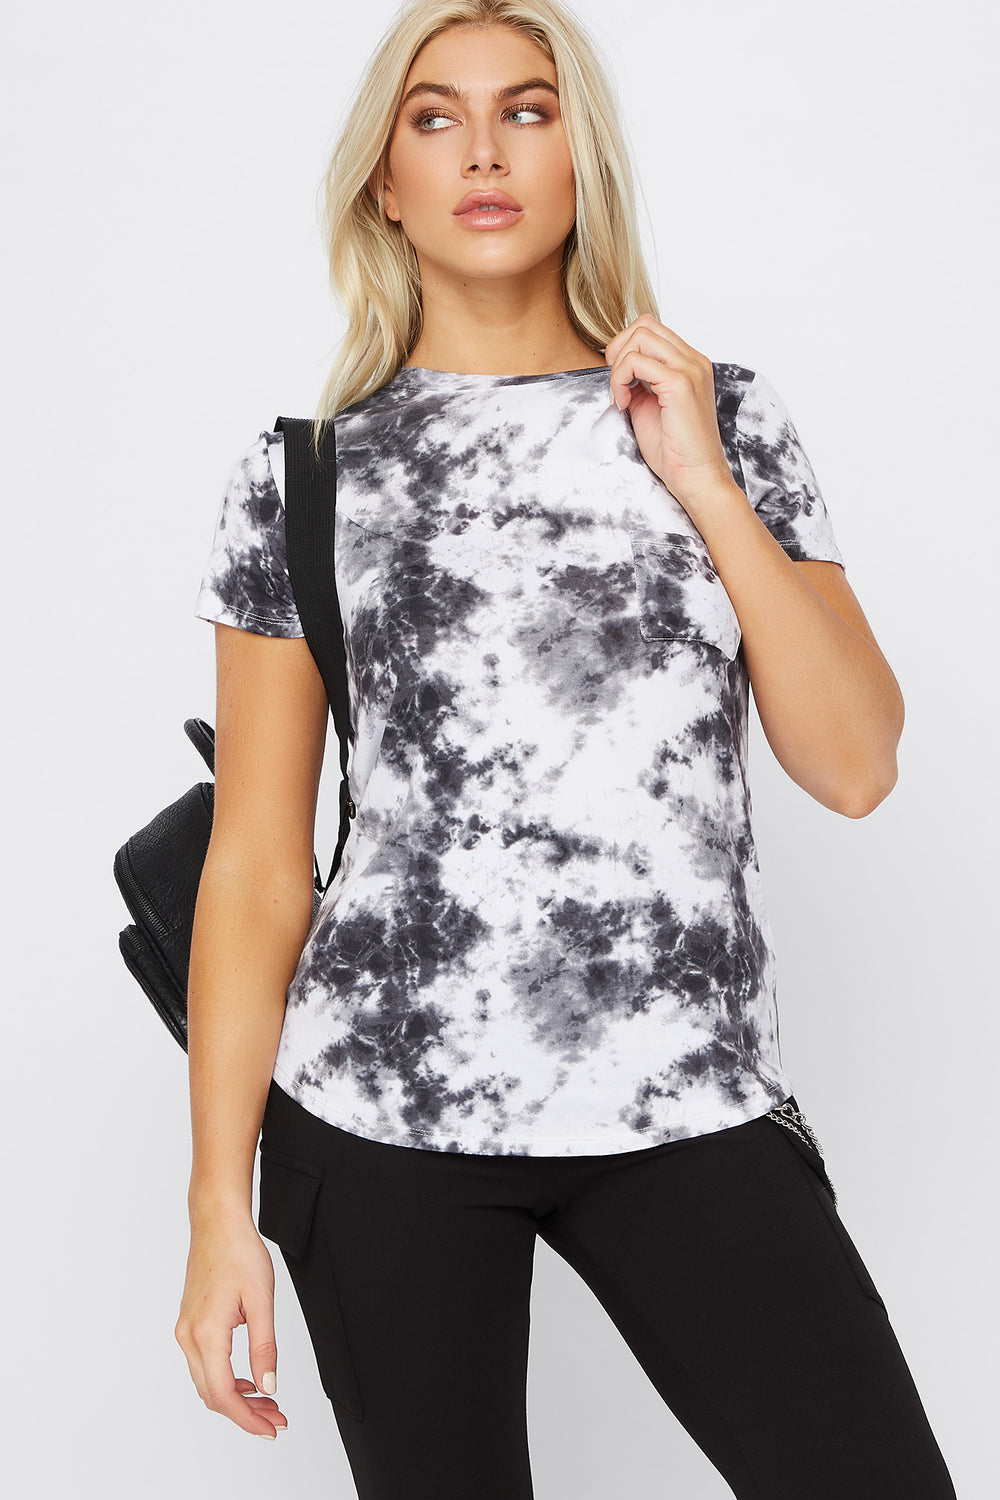 Relaxed Tye Die Pocket T-Shirt Black with White